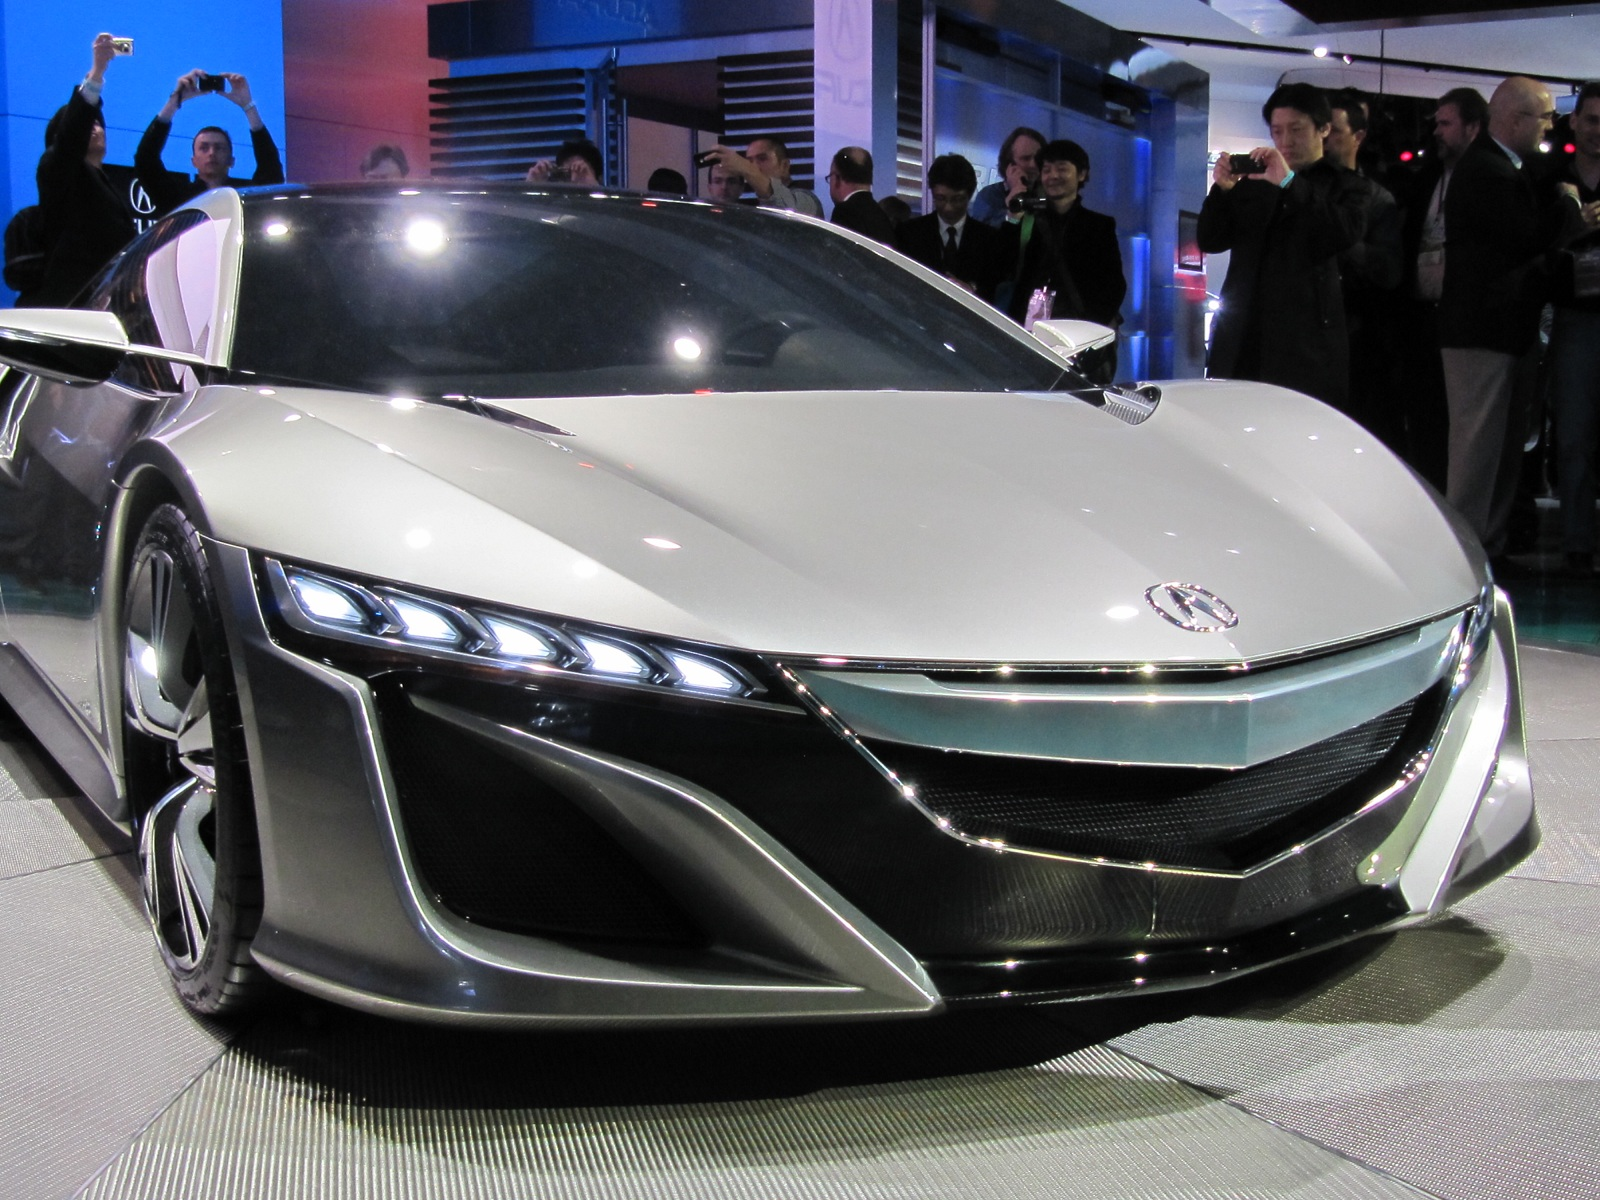 2014 Acura Nsx Hybrid Supercar Will Debut January In Detroit